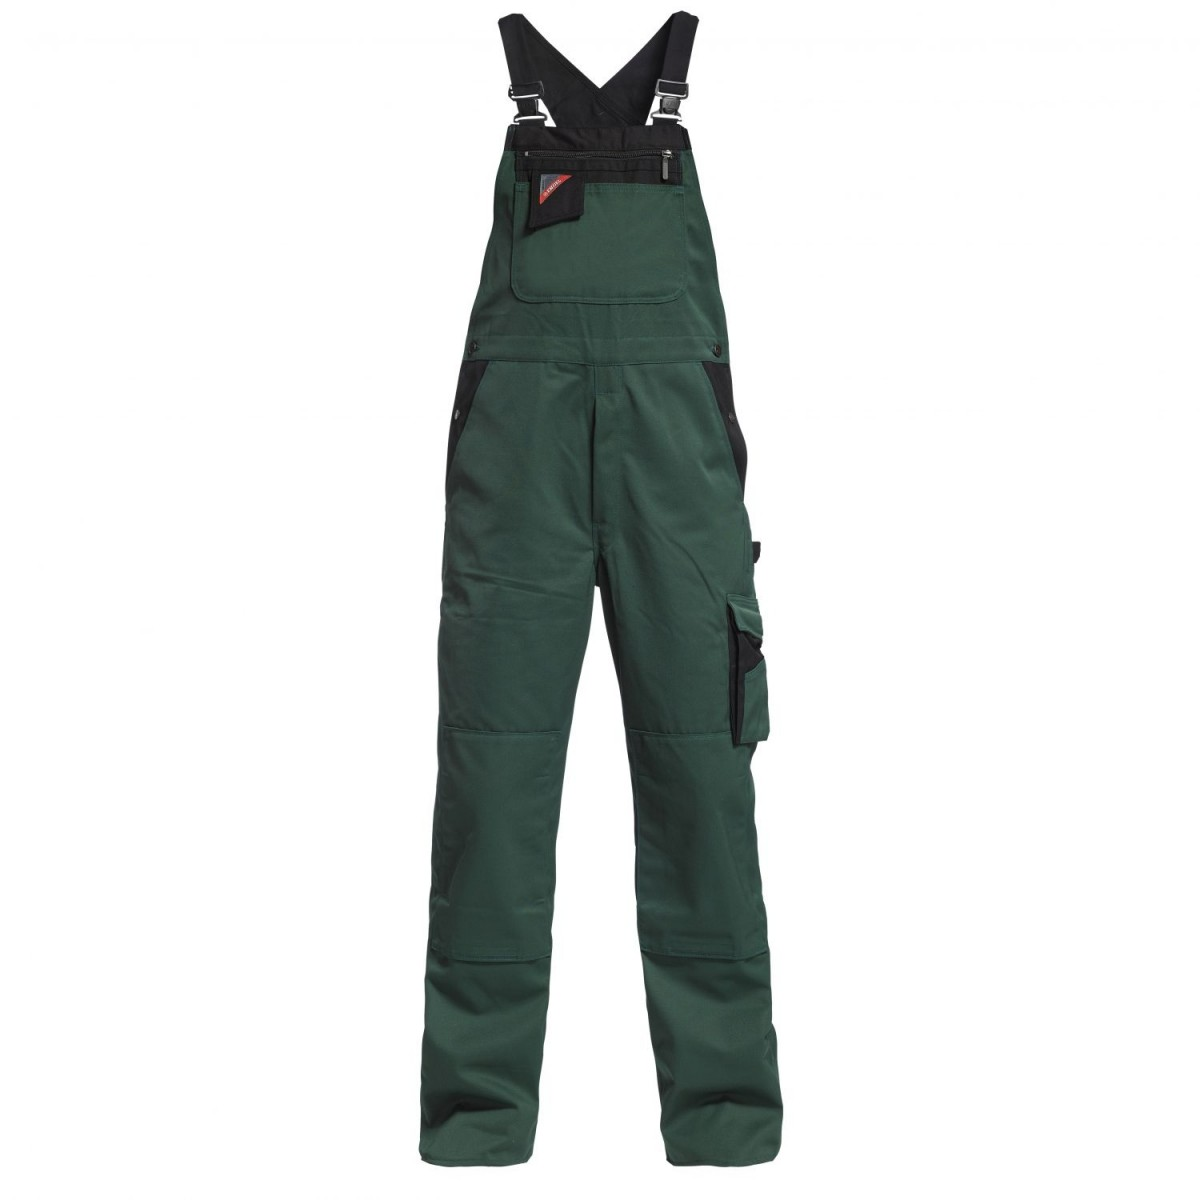 F. Engel Enterprise overalls Grøn/Sort-32